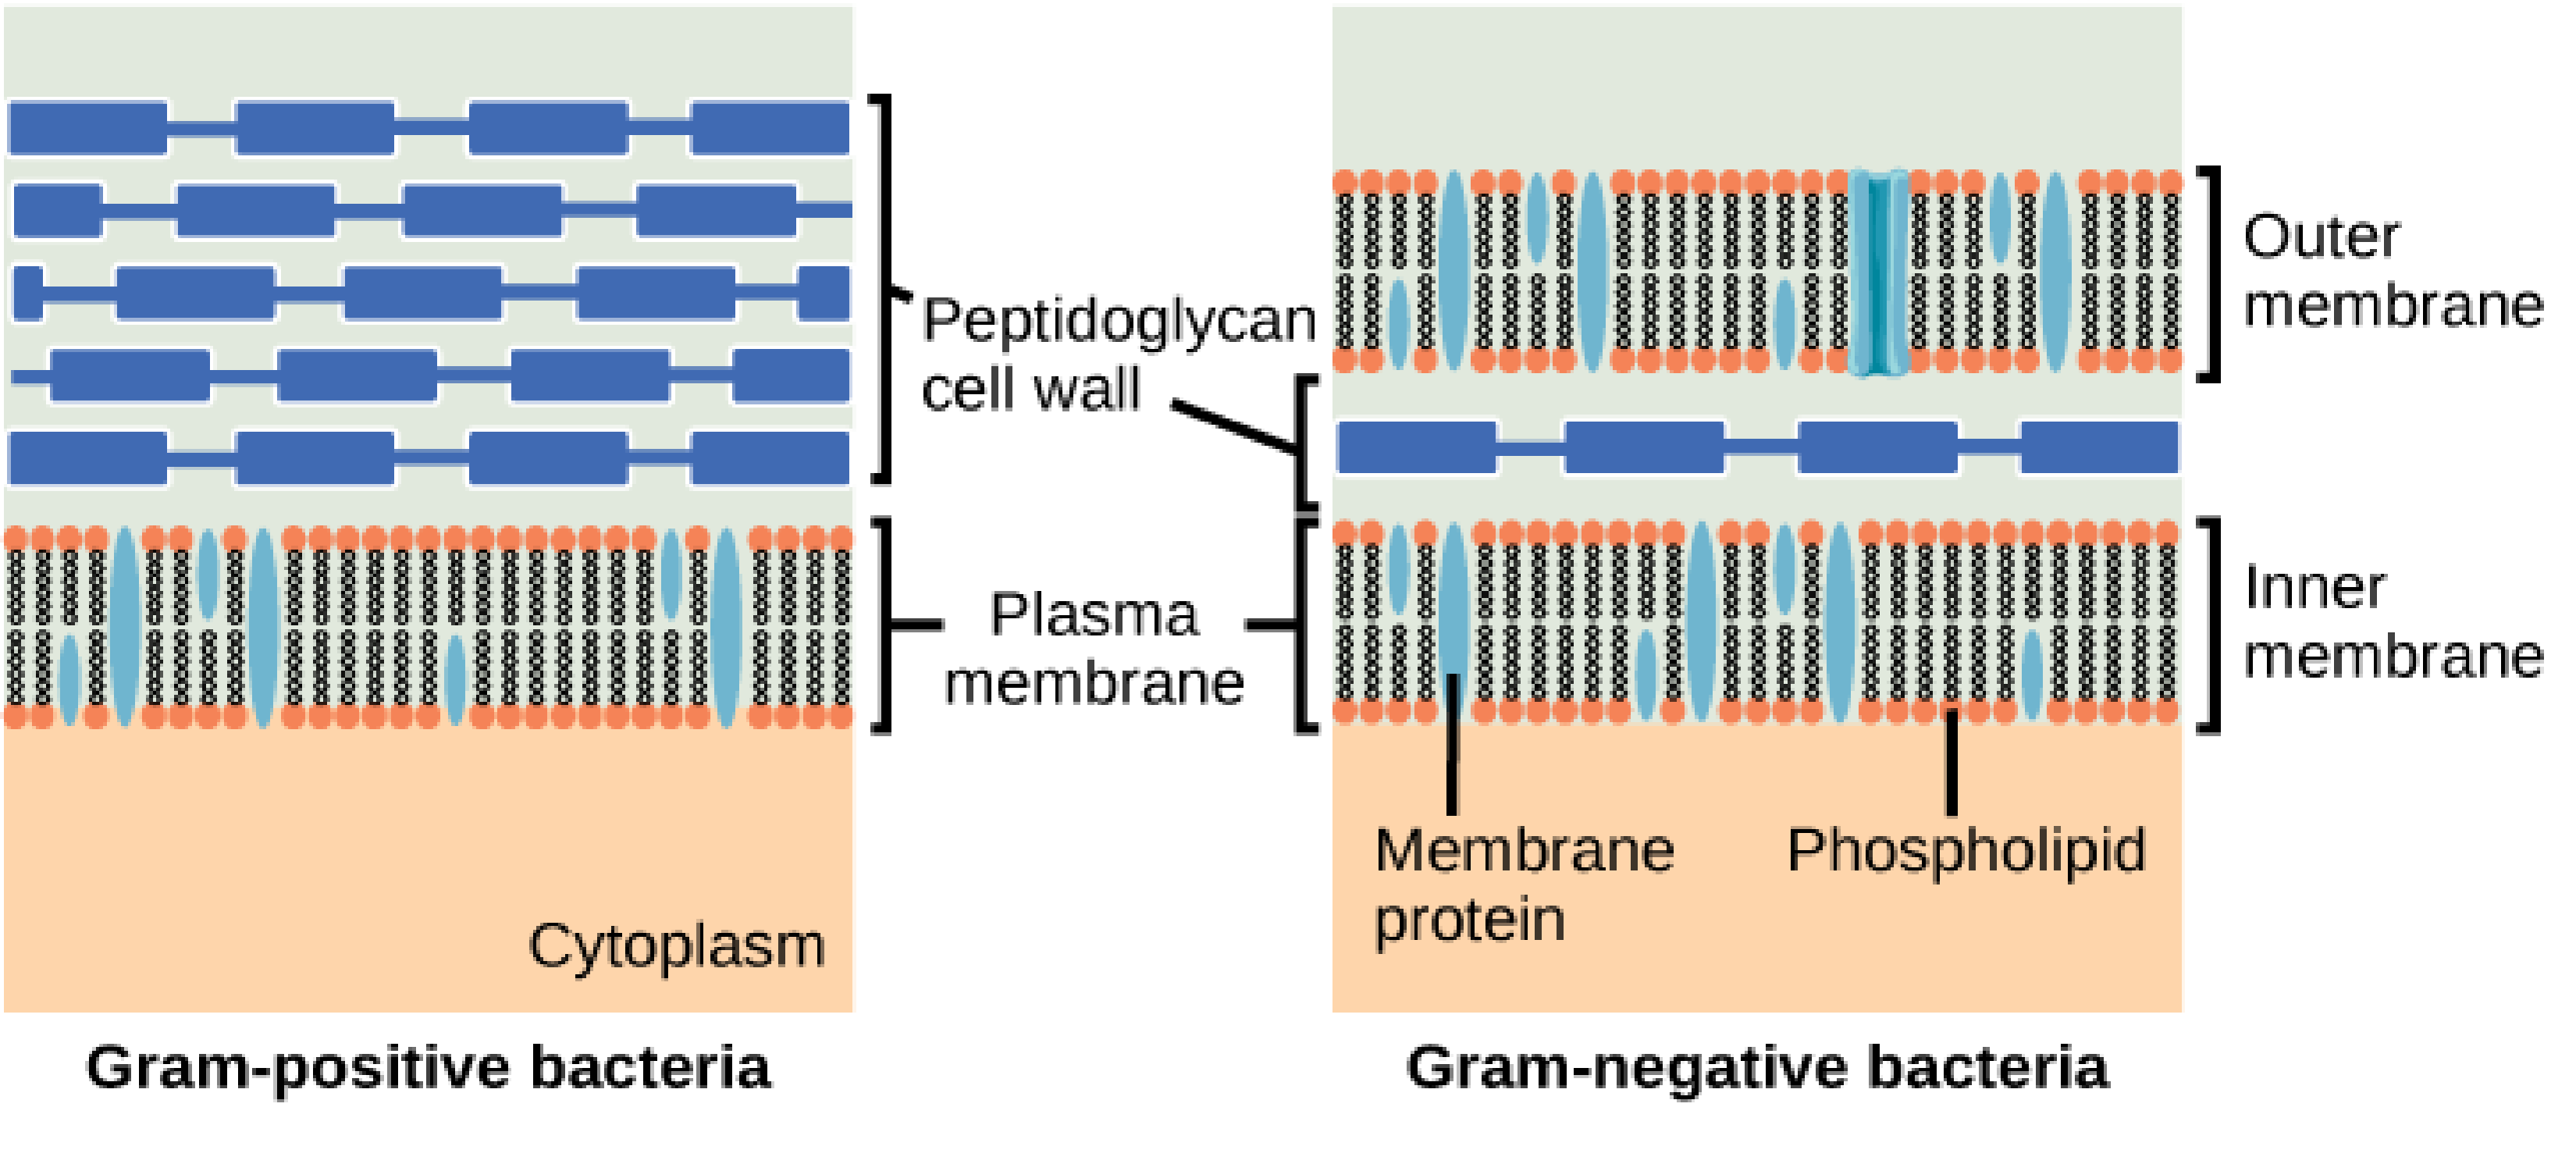 Schematic differences between Gram-positive and Gram-negative bacteria. The former have a single bilayer with an enveloping peptidoglycan cell wall protecting the bacterium, whereas the latter have two cell membranes separated by a periplasm region, within which is the cell wall.